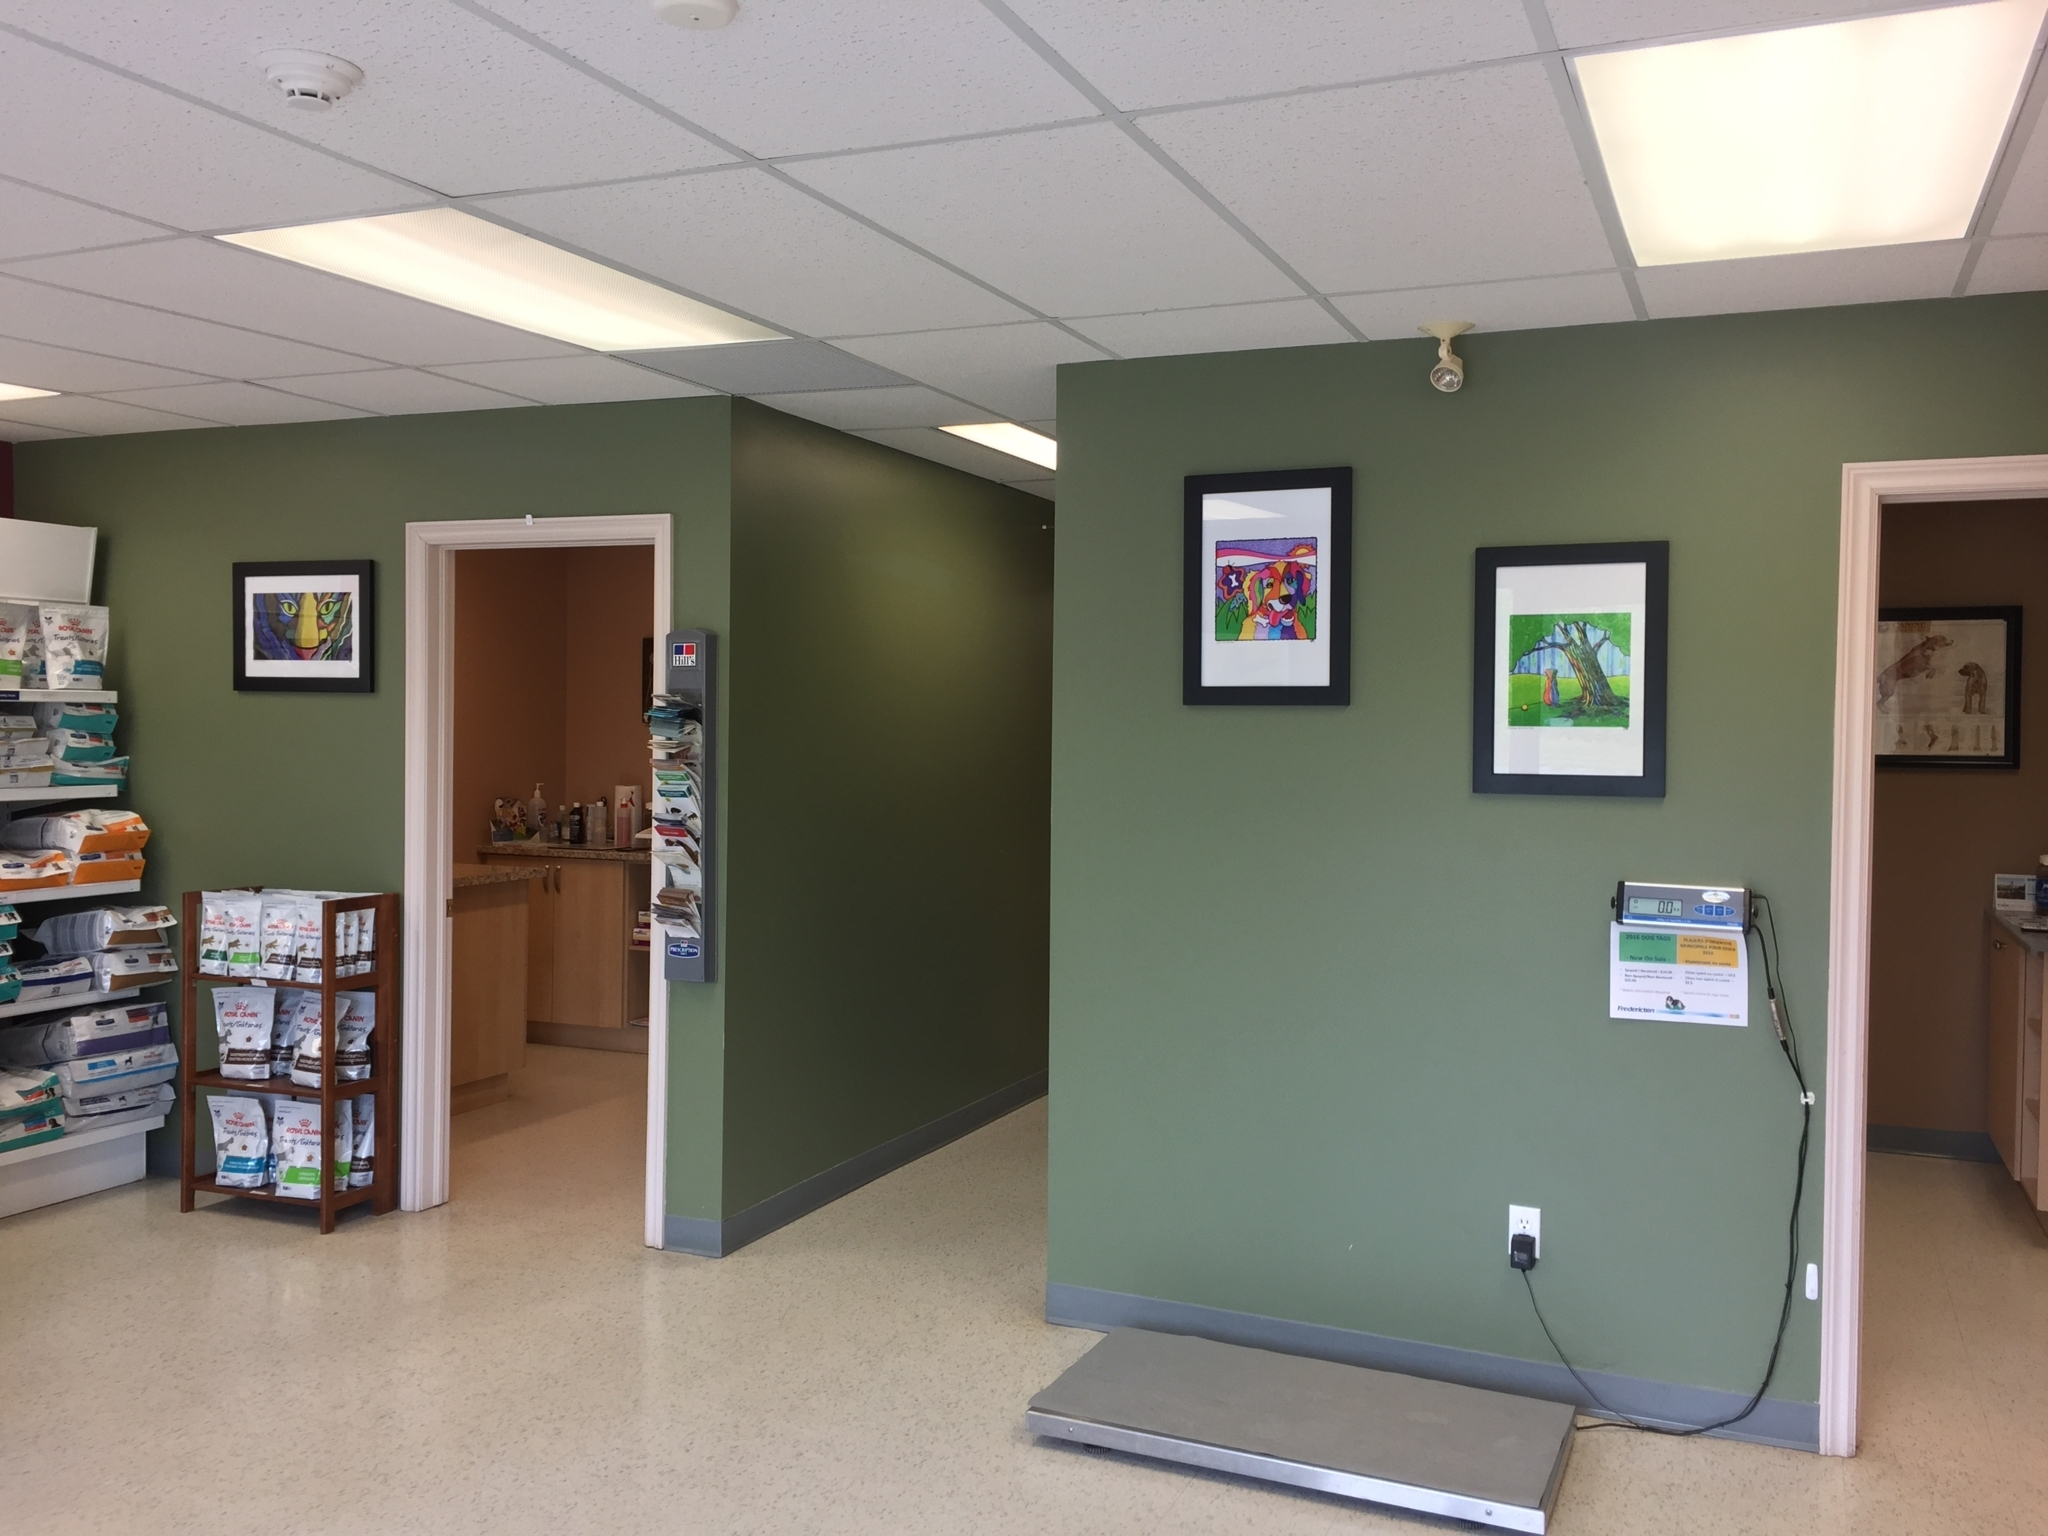 Images Royal Road Veterinary Hospital Inc